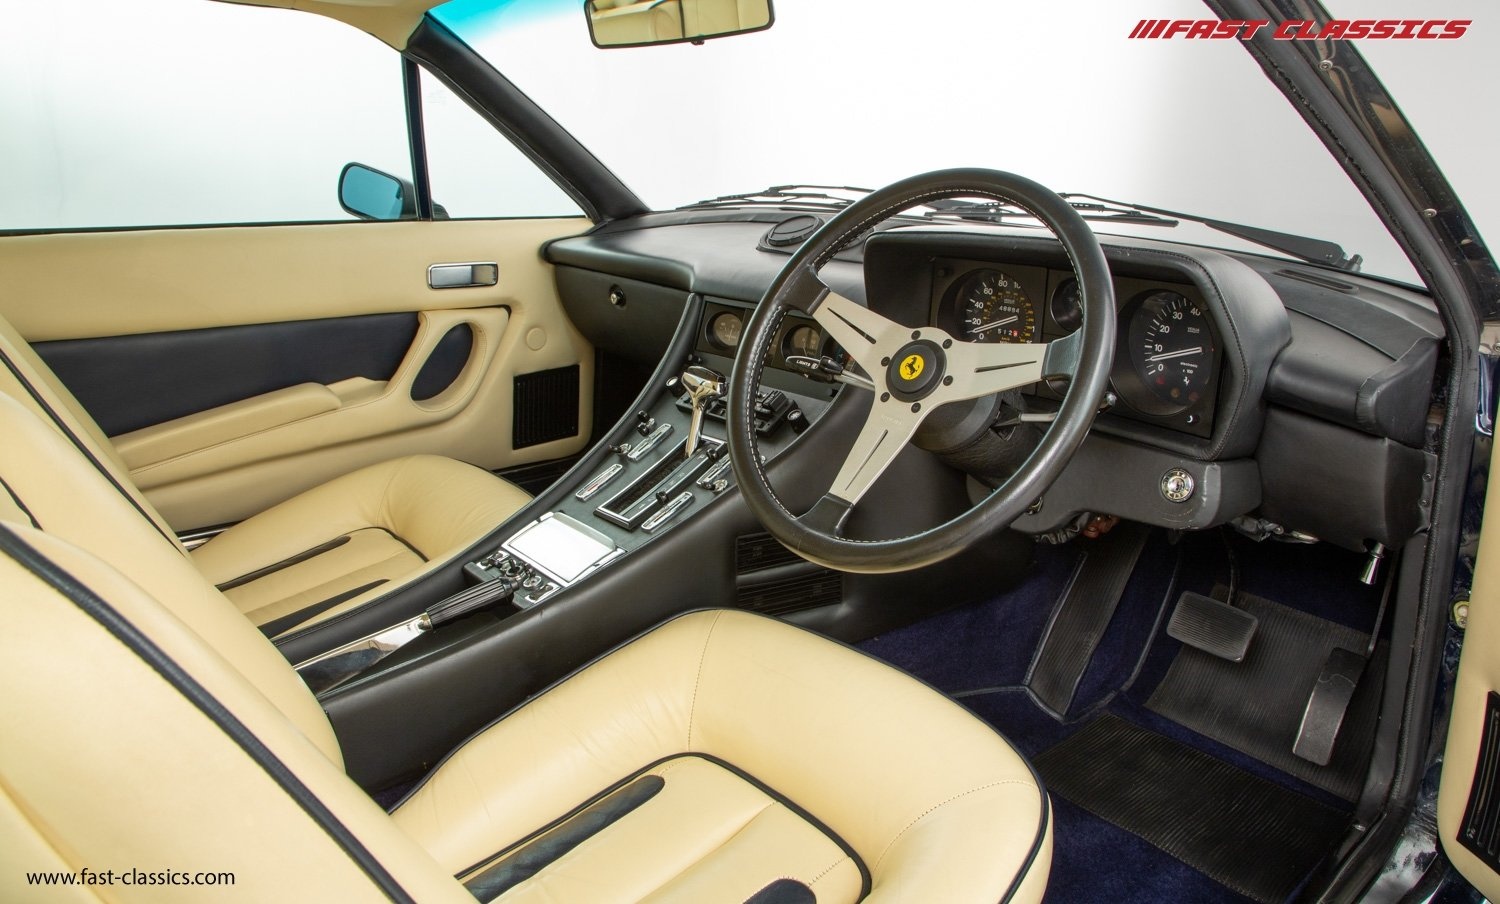 1980 FERRARI 400I // BLU POZZI // UK RHD // 1 OF 180 UK SUPPLIED For Sale (picture 11 of 21)